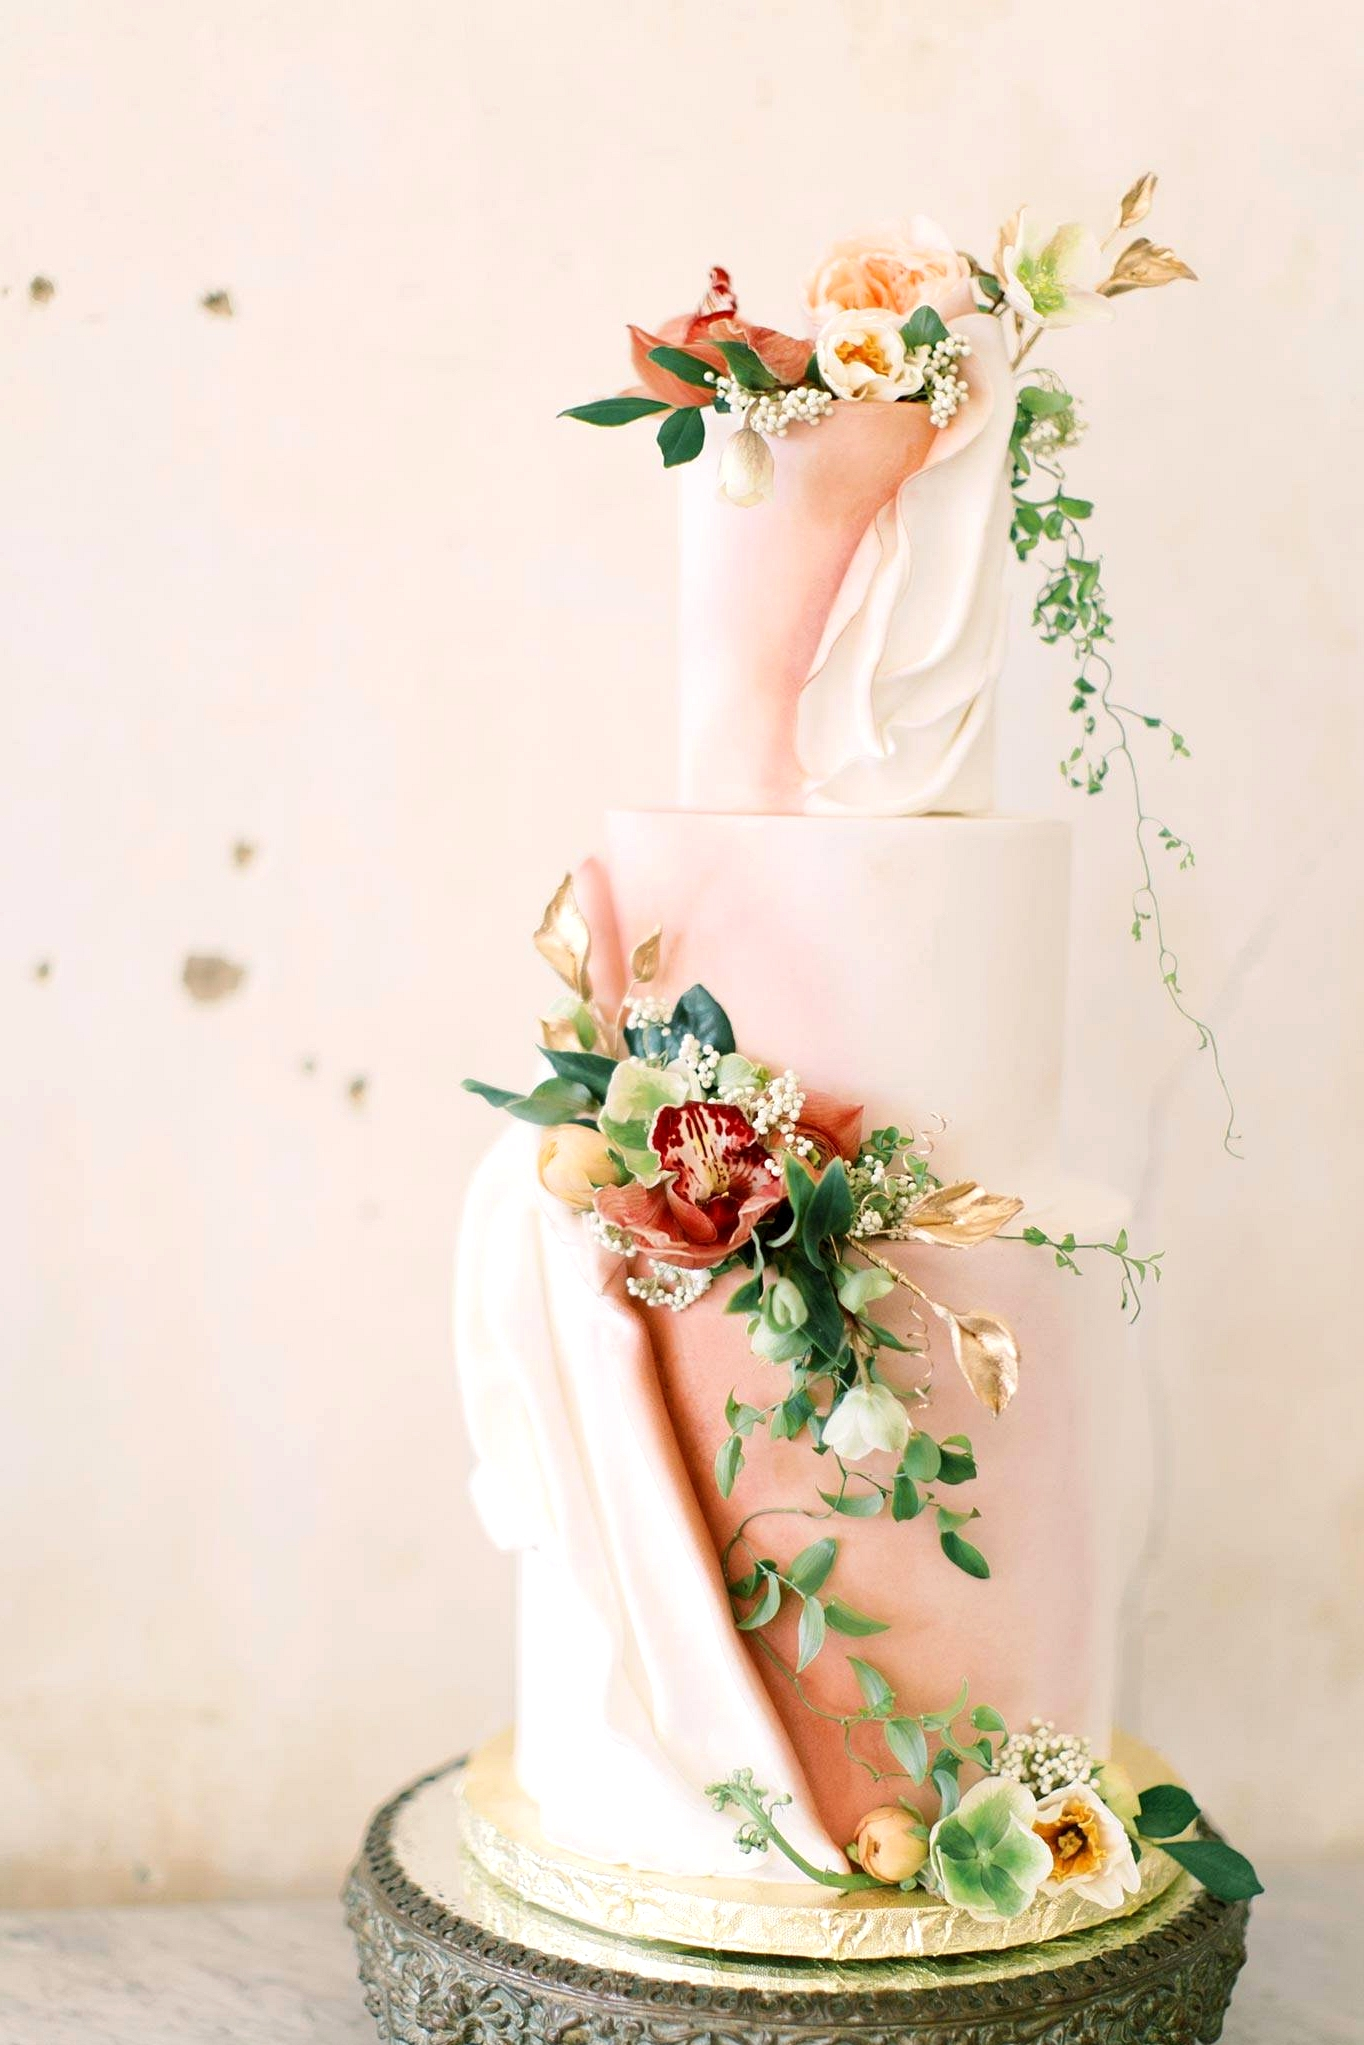 draped fondant wedding cake with pink and white colors and fresh trailing flowers